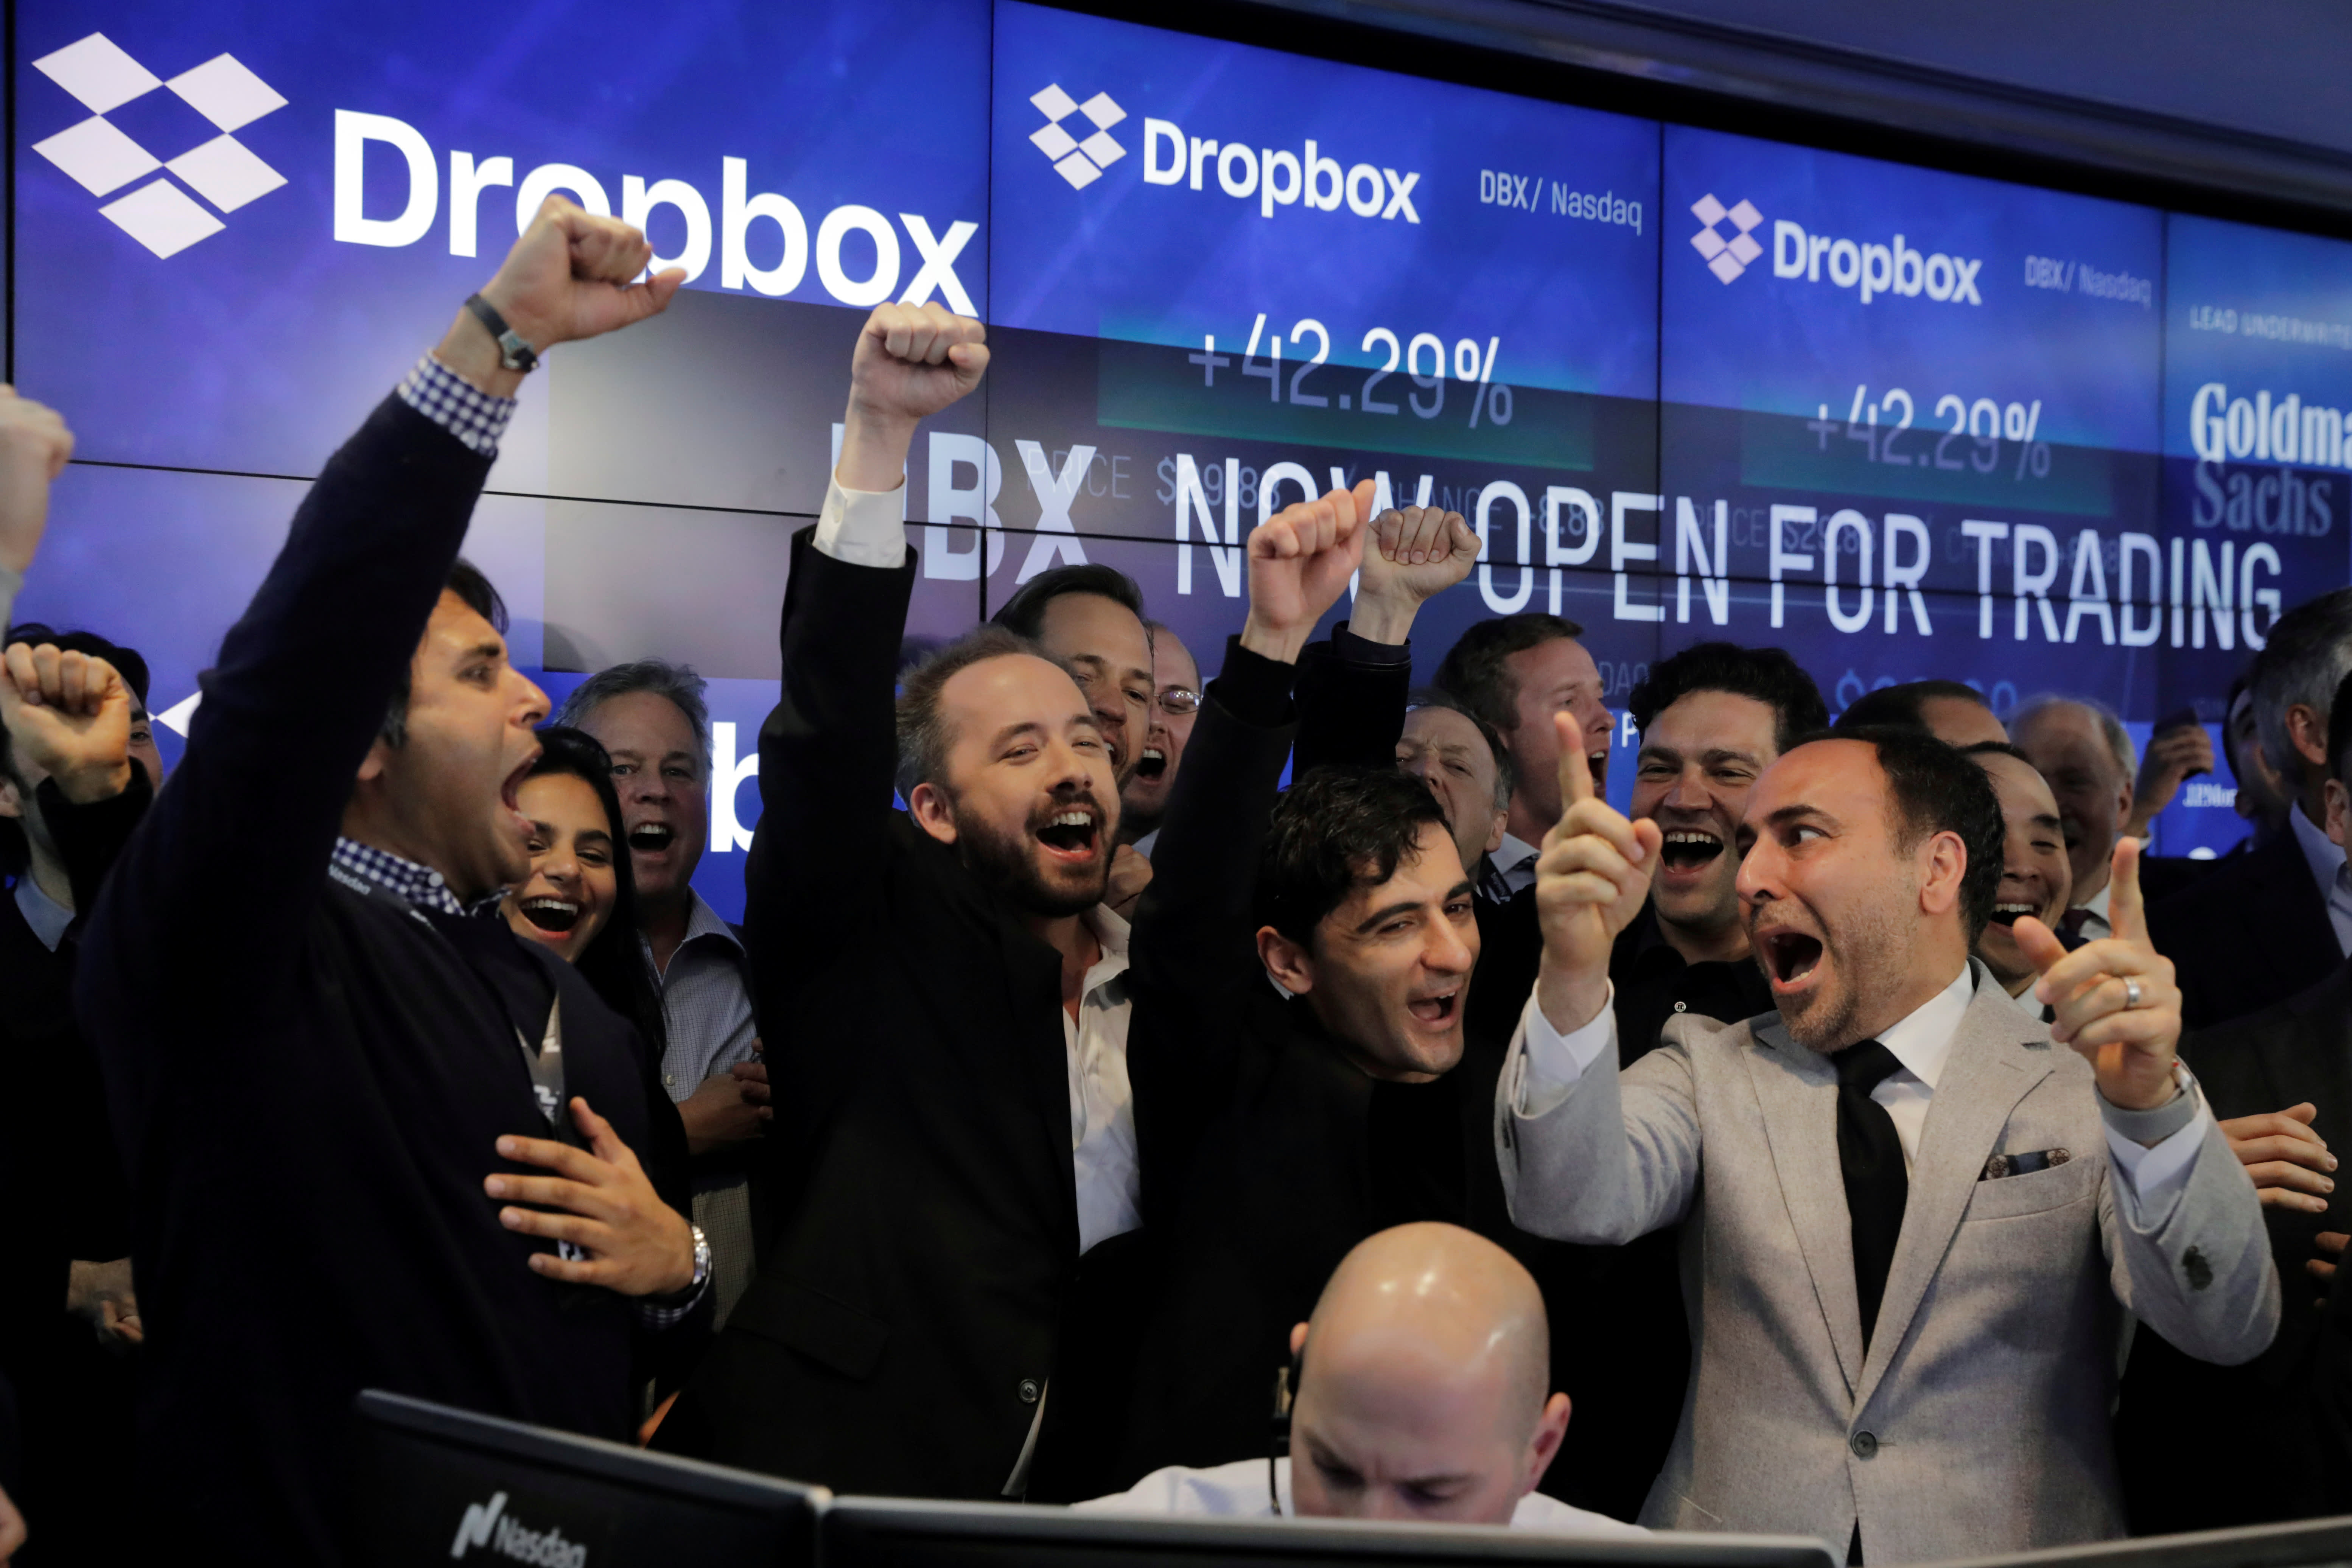 Dropbox Dbx Stock Sees Best Day Since Ipo On Massive Trading Volume